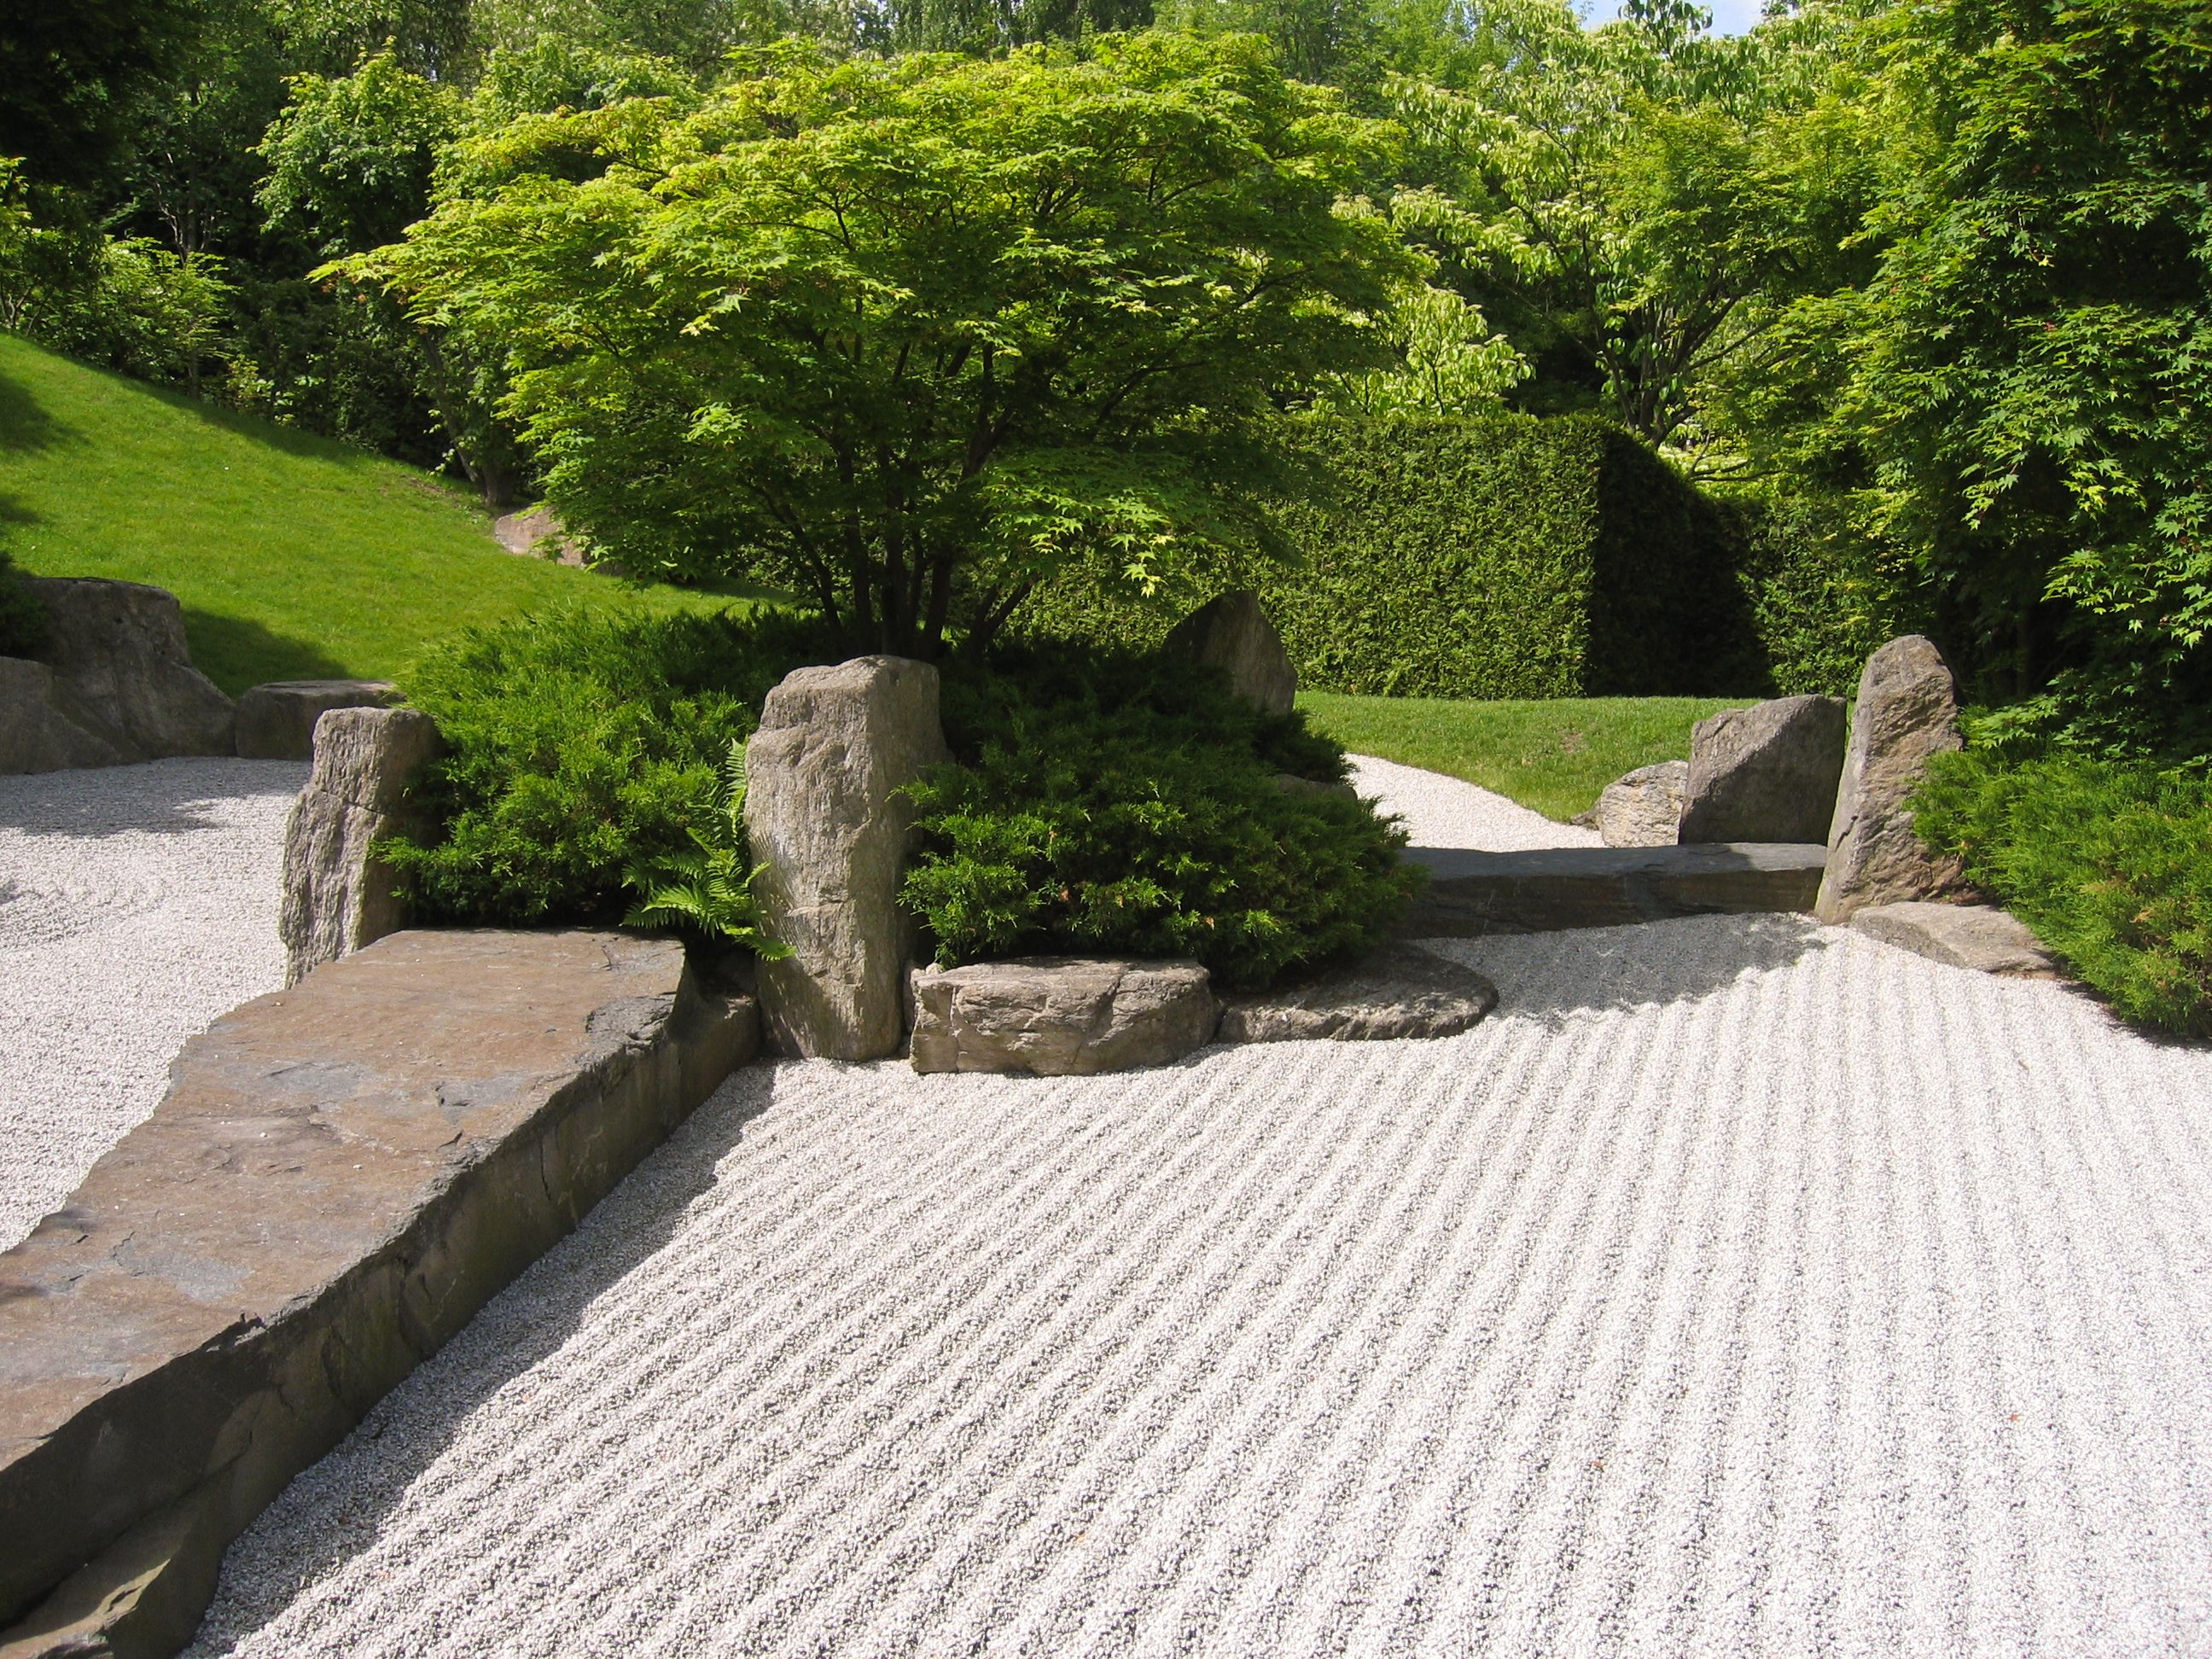 Garden Ideas Japanese 47 best inspiration - japanese/chinese gardens images on pinterest